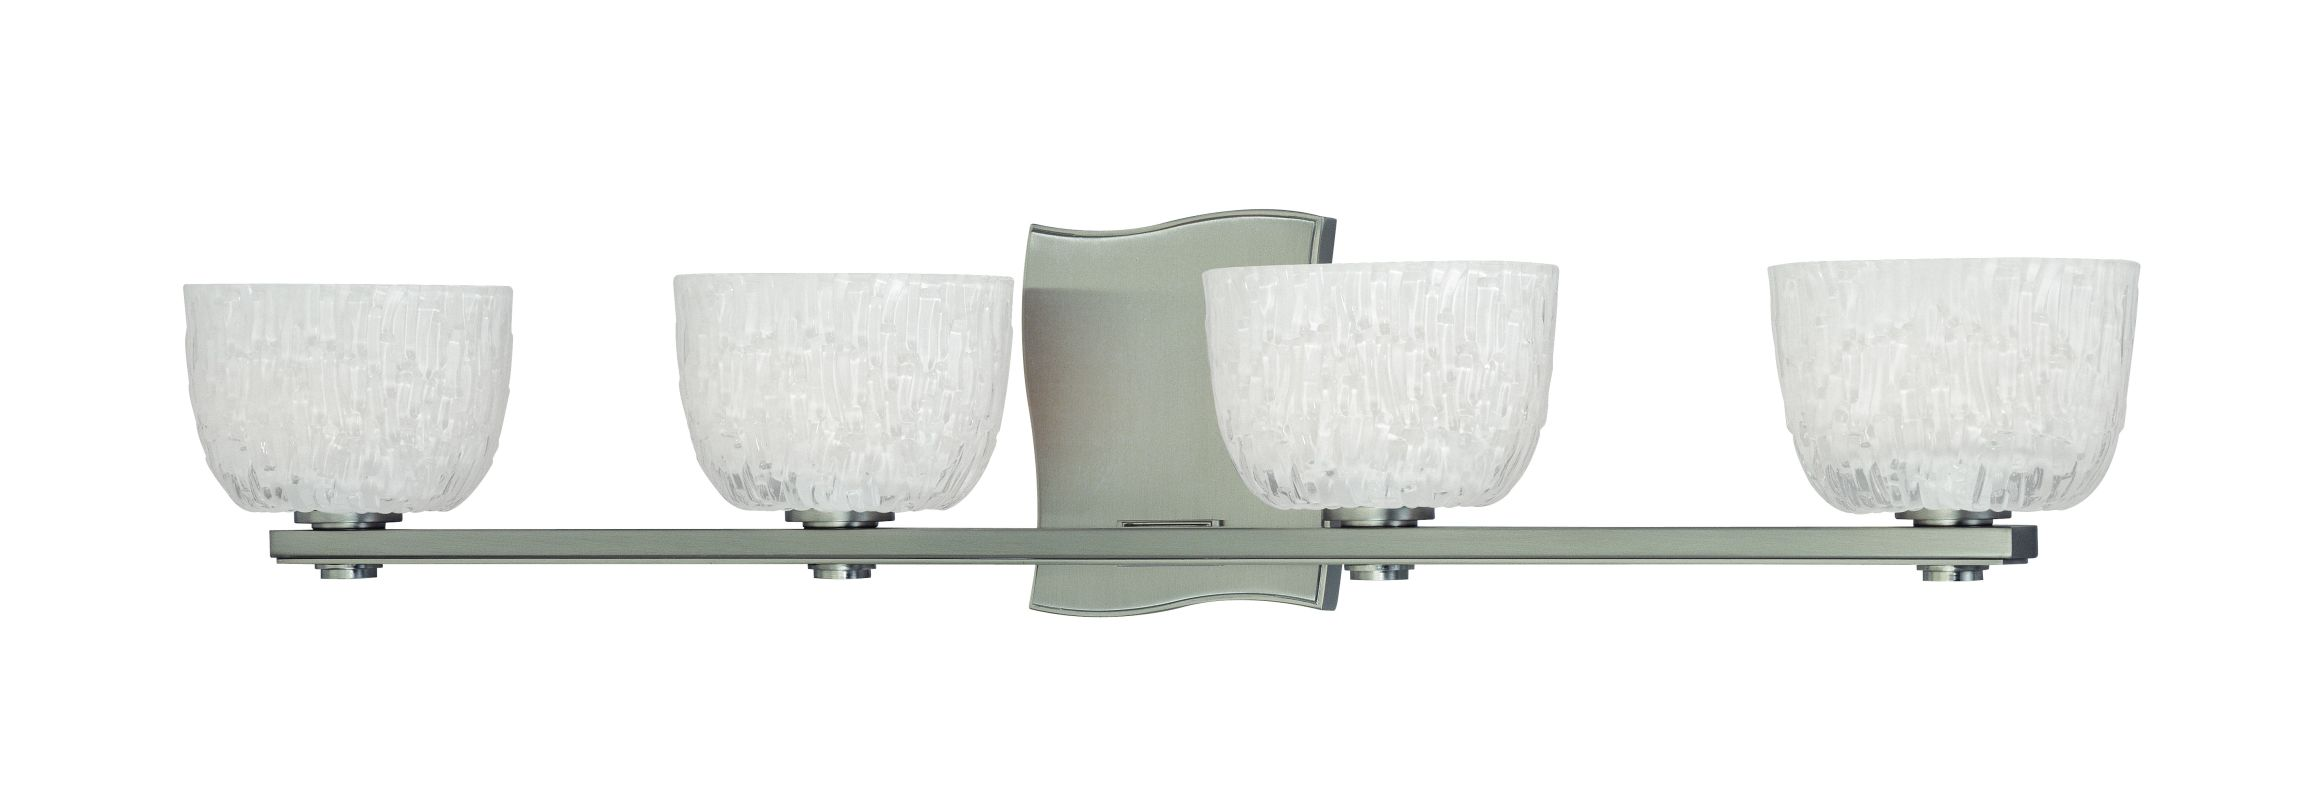 "Hudson Valley Lighting 2664 Four Light Up Lighting Bath Vanity with Sale $482.00 ITEM: bci1737239 ID#:2664-SN UPC: 806134123529 Transitional Four Light Up Lighting Bath Vanity with Bowl Shaped Shades from the Cove Neck Collection Cove Neck Collection Four Light Up Lighting Bath Vanity with Bowl Shaped Shades. Features: Bowl Shaped Shades May only be mounted up-lighting. Specifications: Requires (4) 75W Xenon G9 Based Bulbs (Included) Height: 5.5"" Width: 27.25"" Extension: 4.25"" Wall Plate Dimensions: 4.5""W x 5.5""H :"